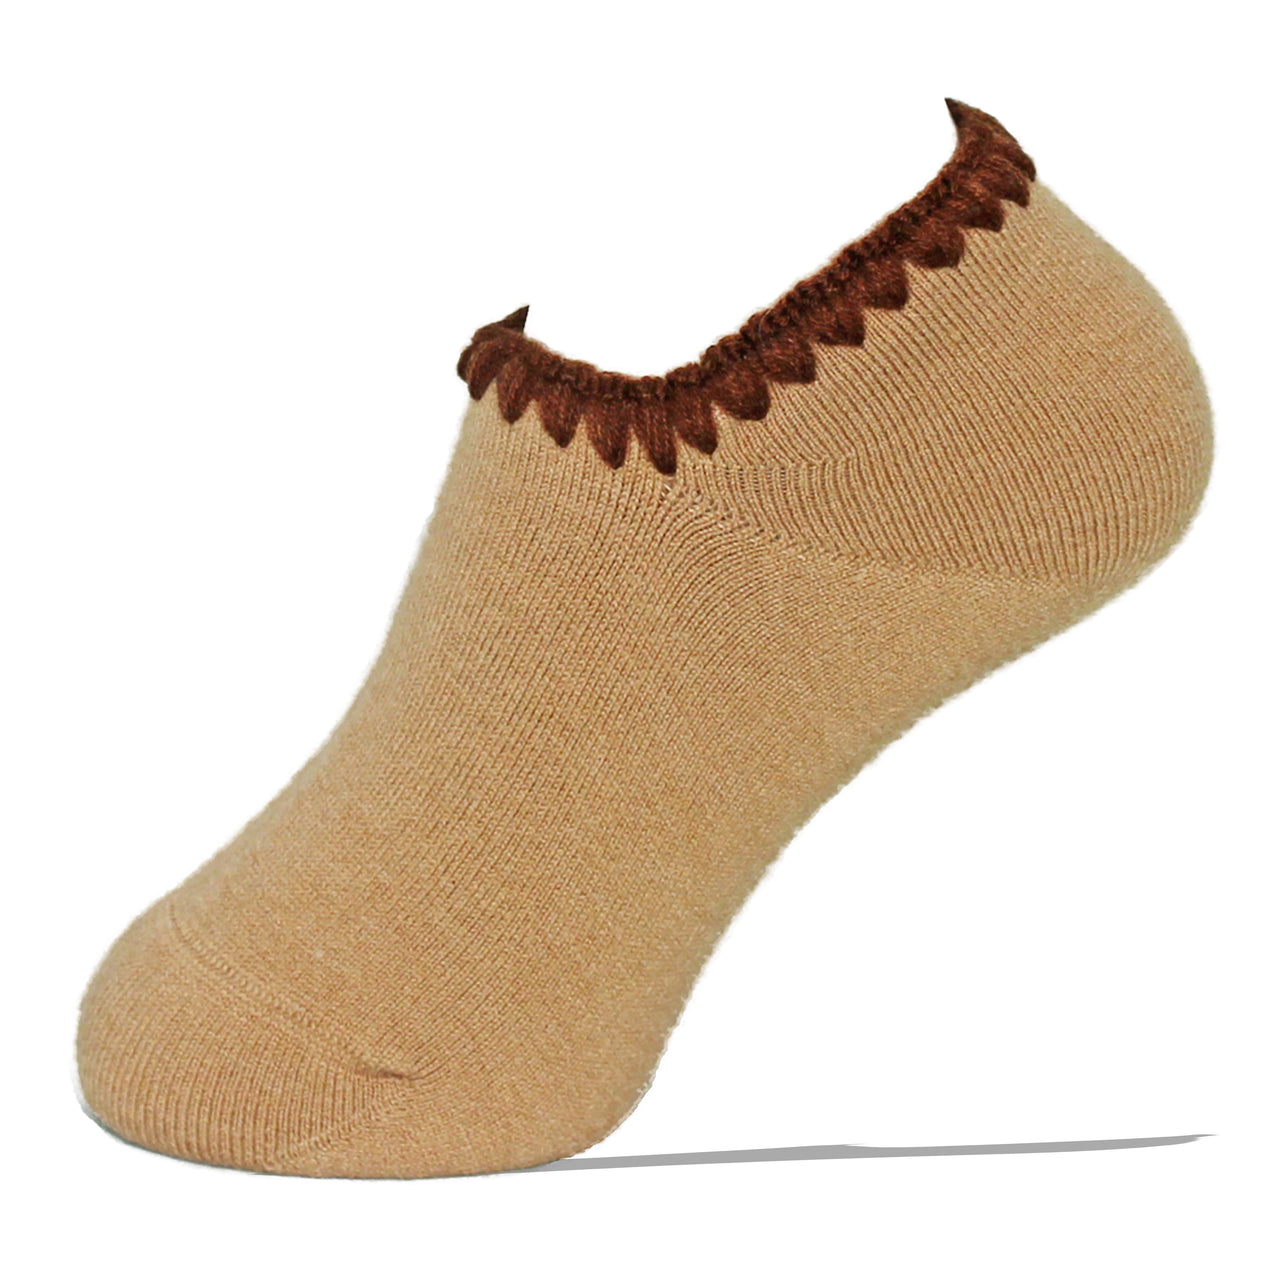 Hamaguri Slipper Socks | Classic Color with Grips | Beige - CHERRYSTONE by MARKET TO JAPAN LLC